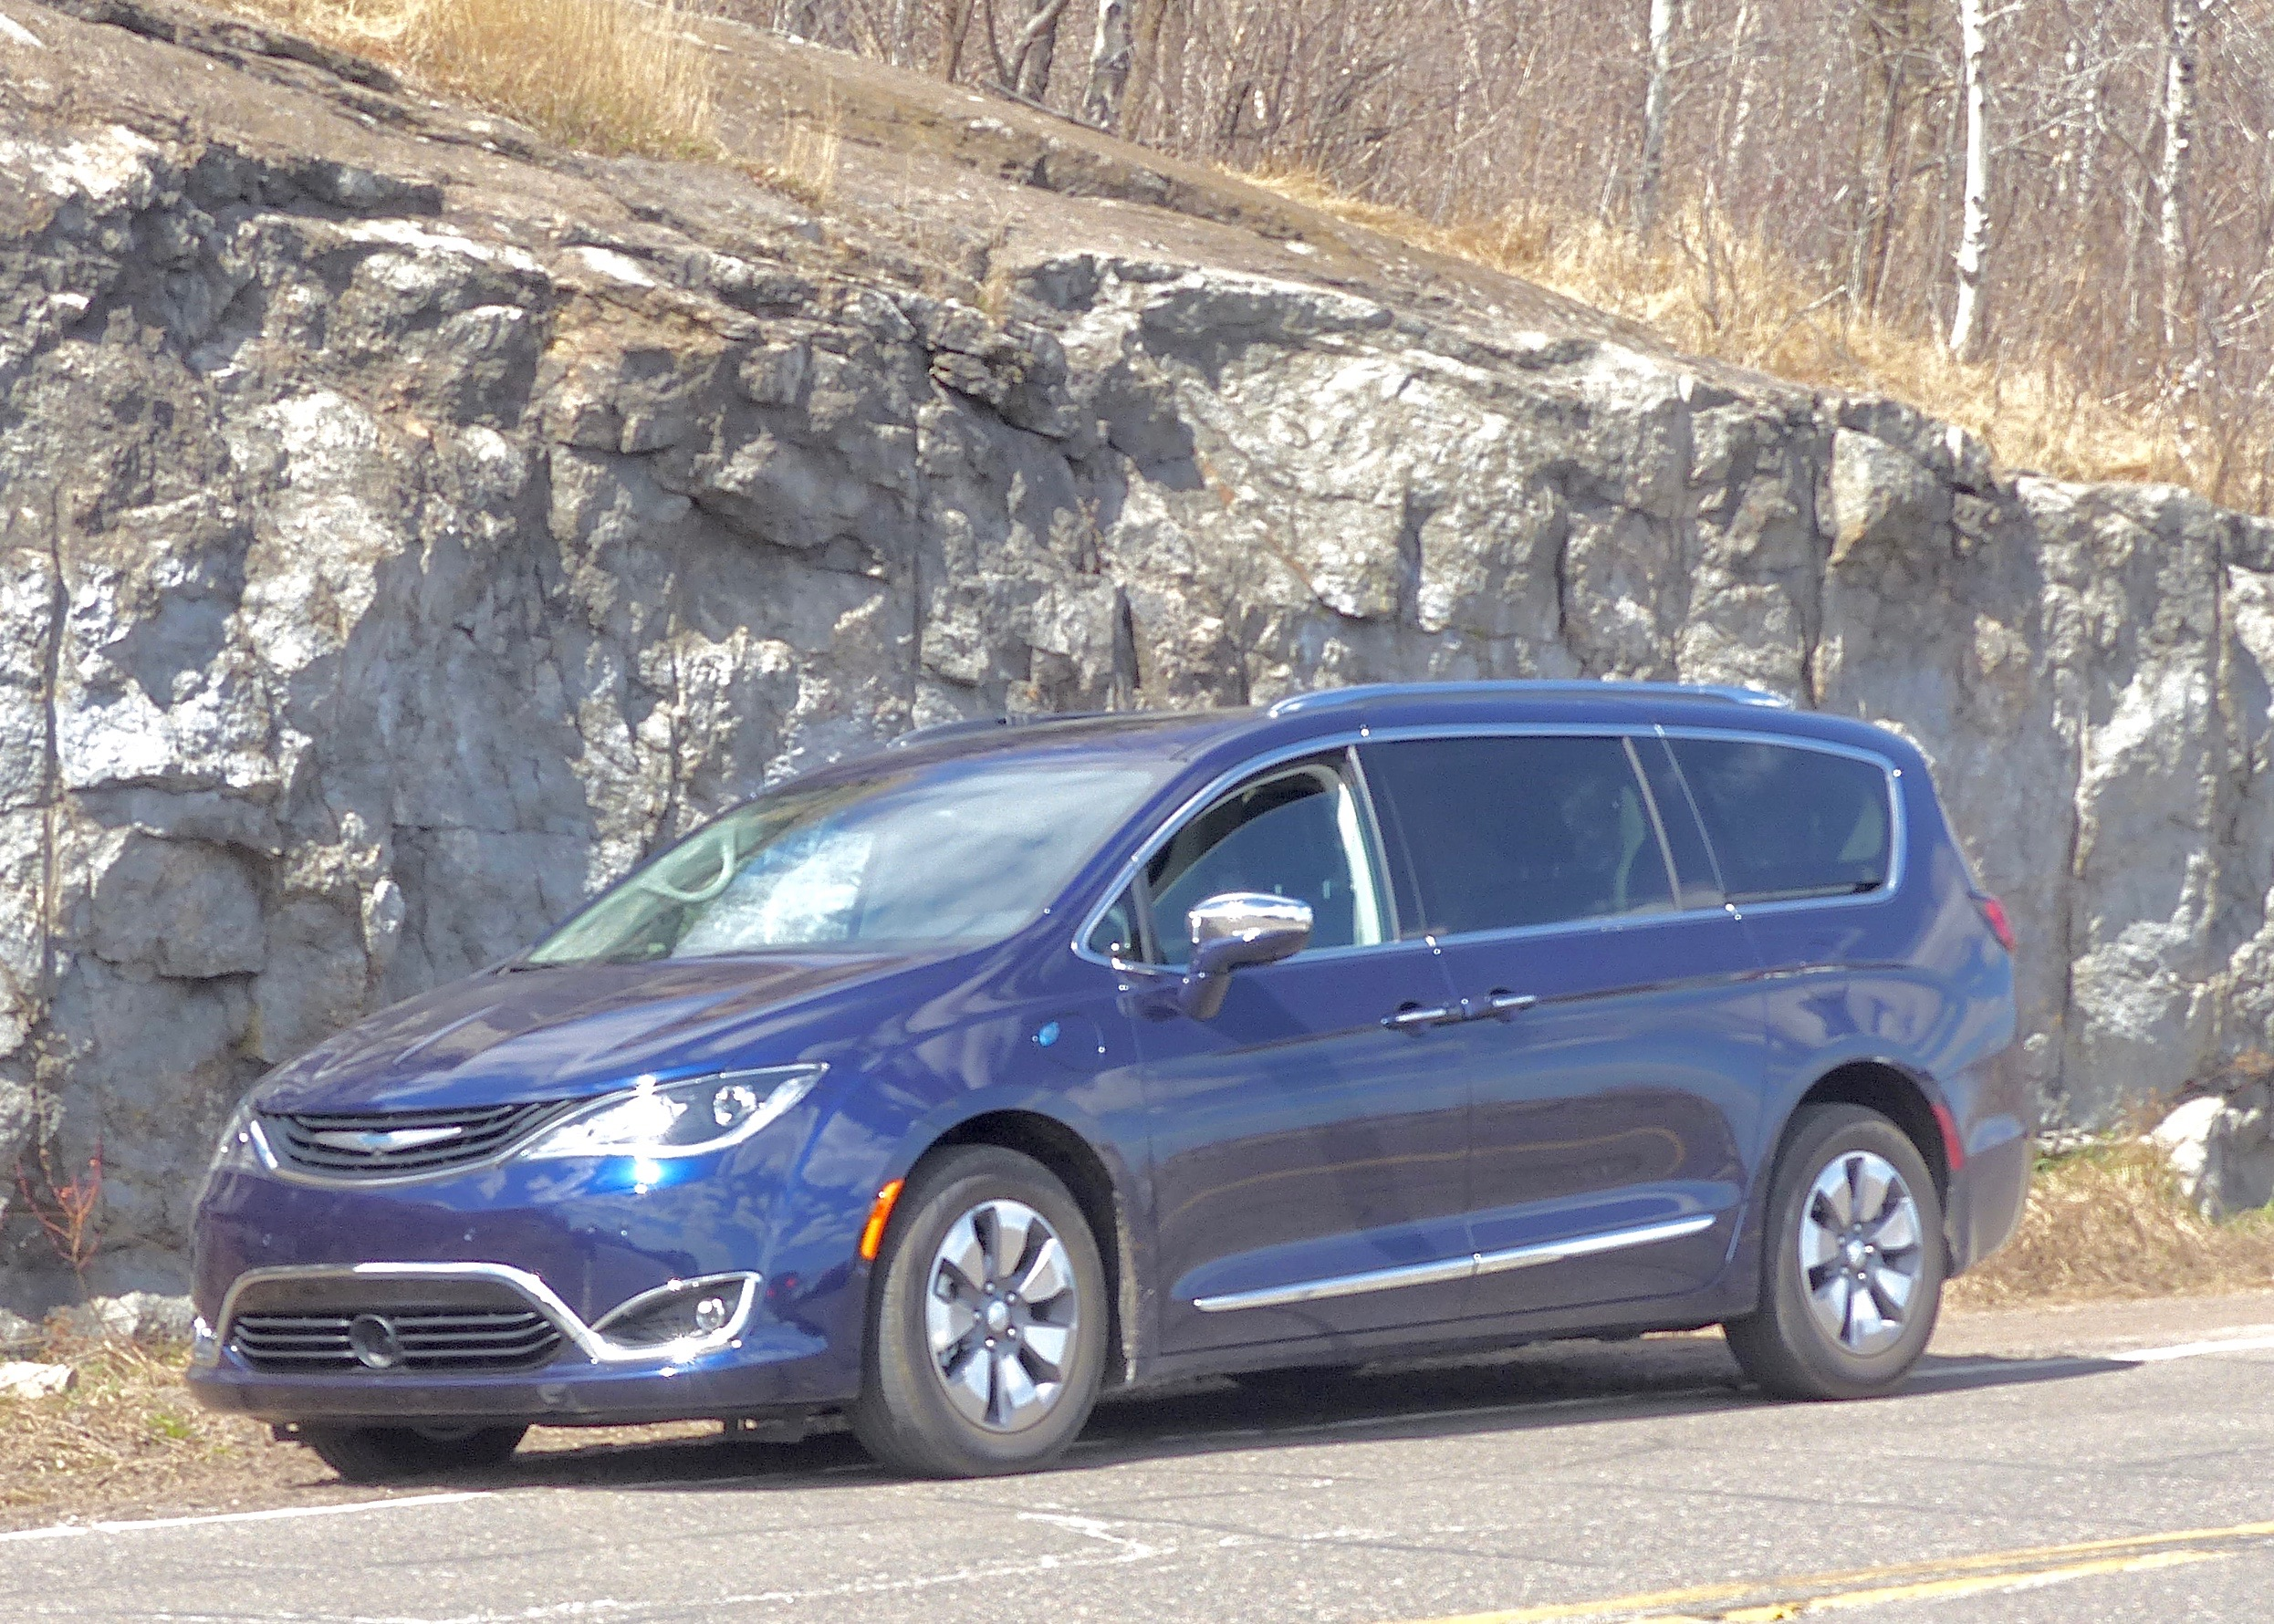 New Pacifica Hybrid Limited combines 3.6-liter V6 with electric hybrid power for smooth operation and high fuel economy.